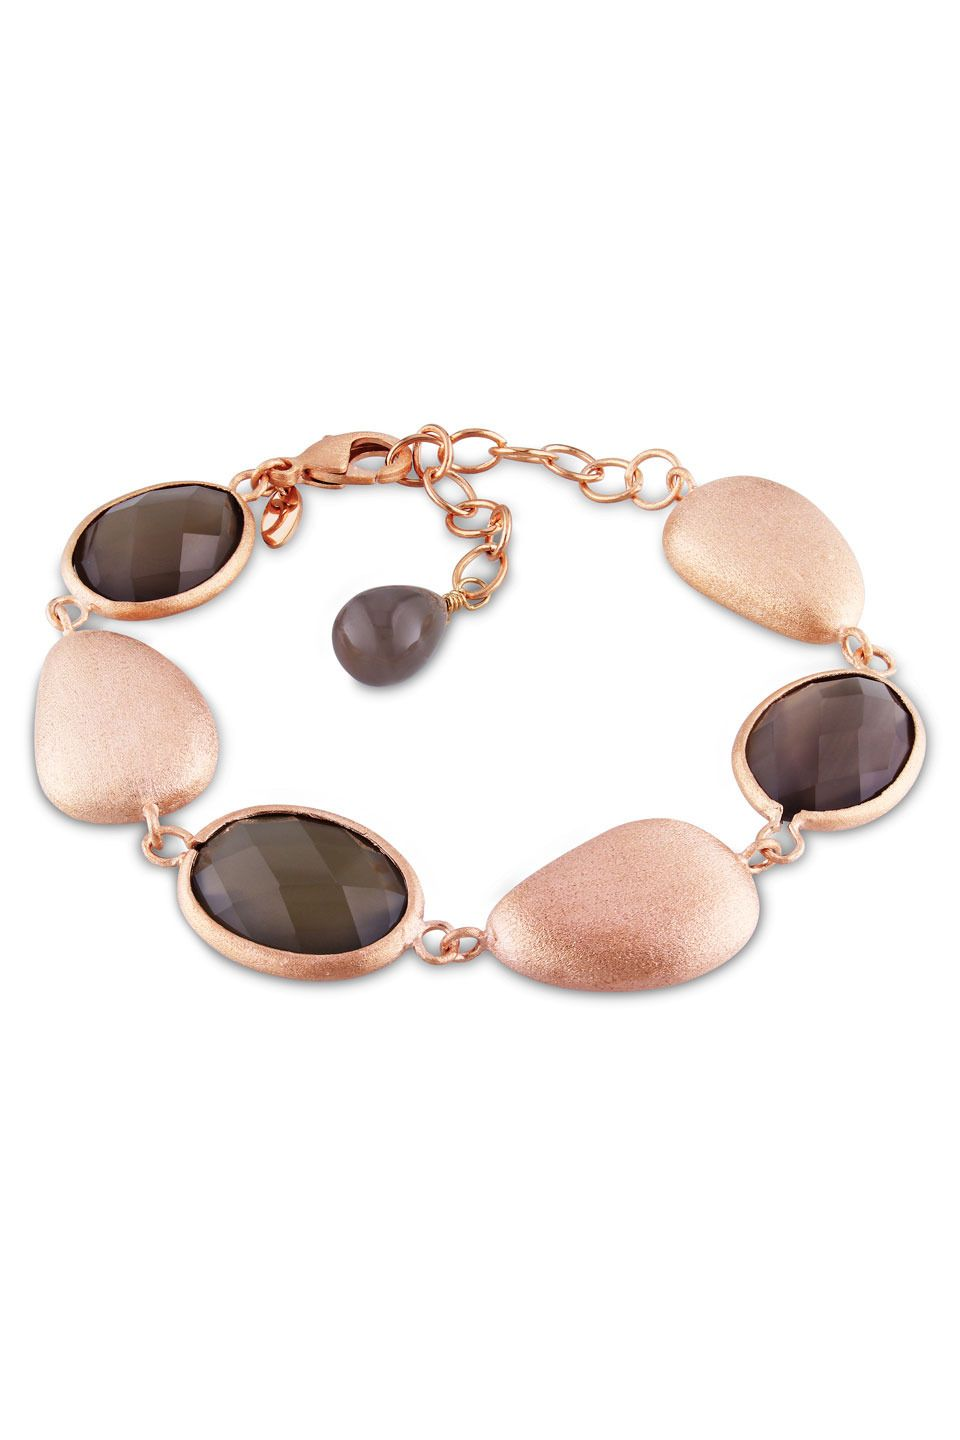 Gray Agate Bracelet in Pink Gold